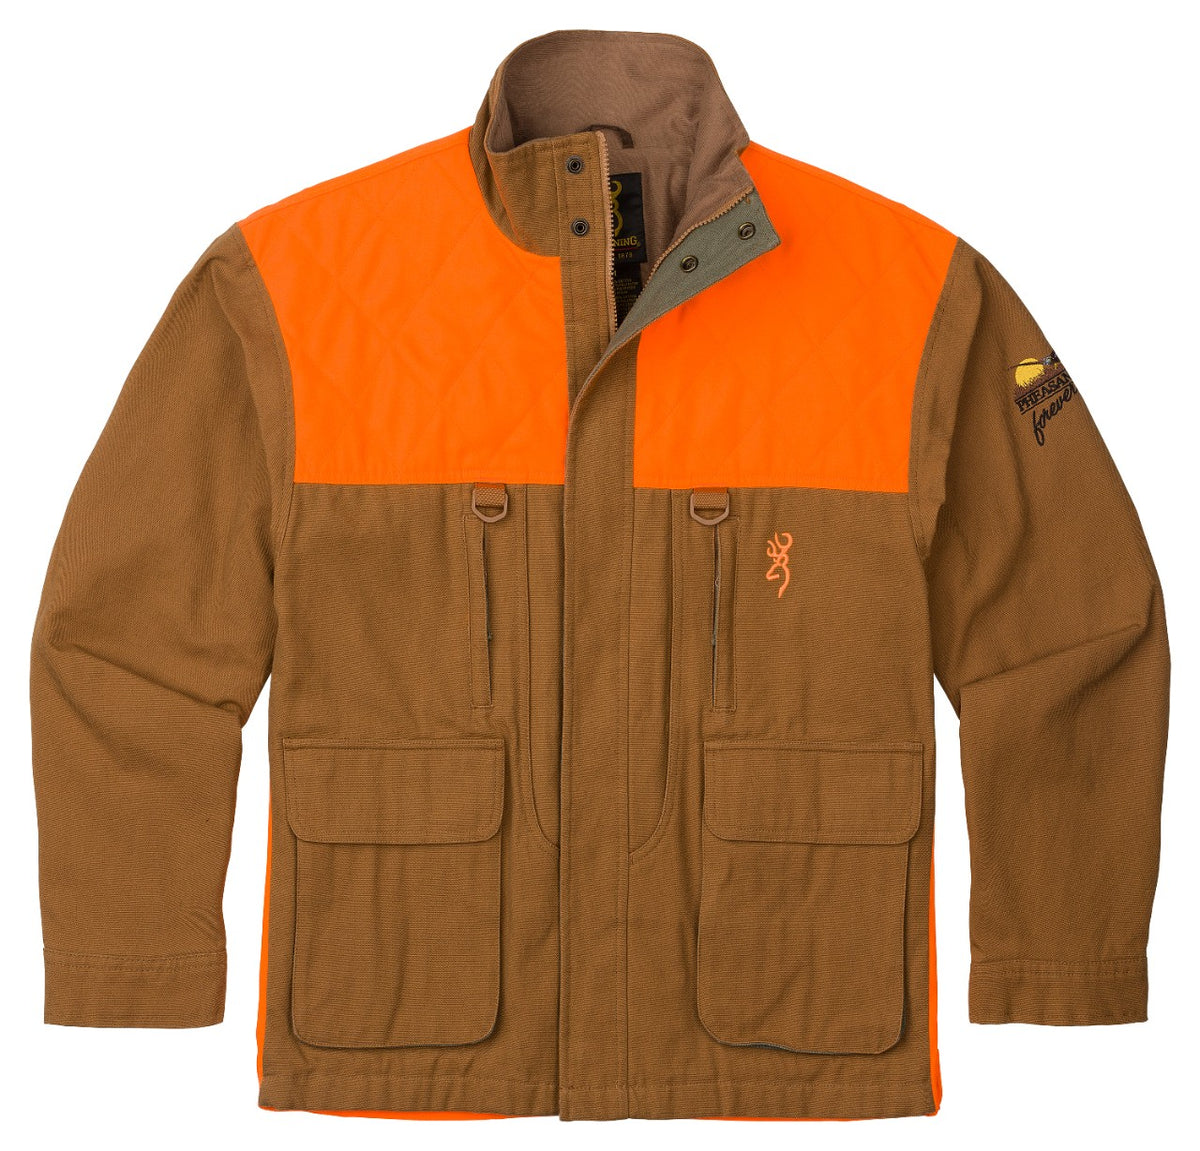 Pheasants Forever Jacket with embroidered Pheasants Forever Logo